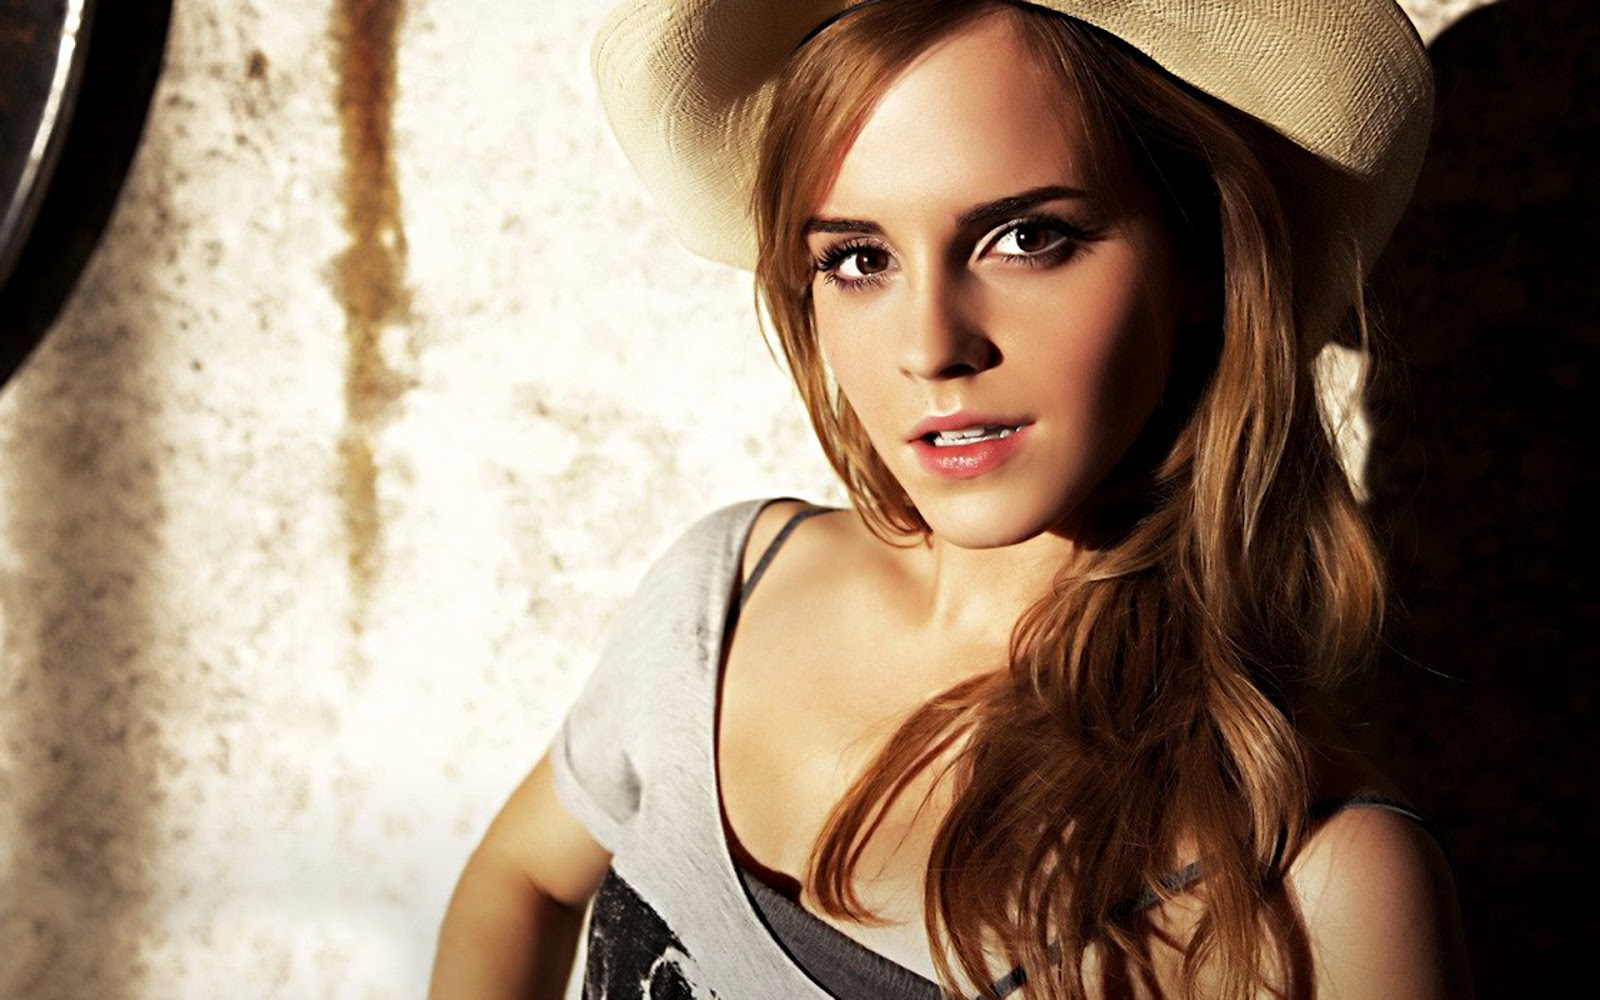 Wellcome to bollywood hd wallpapers emma watson hollywood - Cute emma watson wallpaper ...